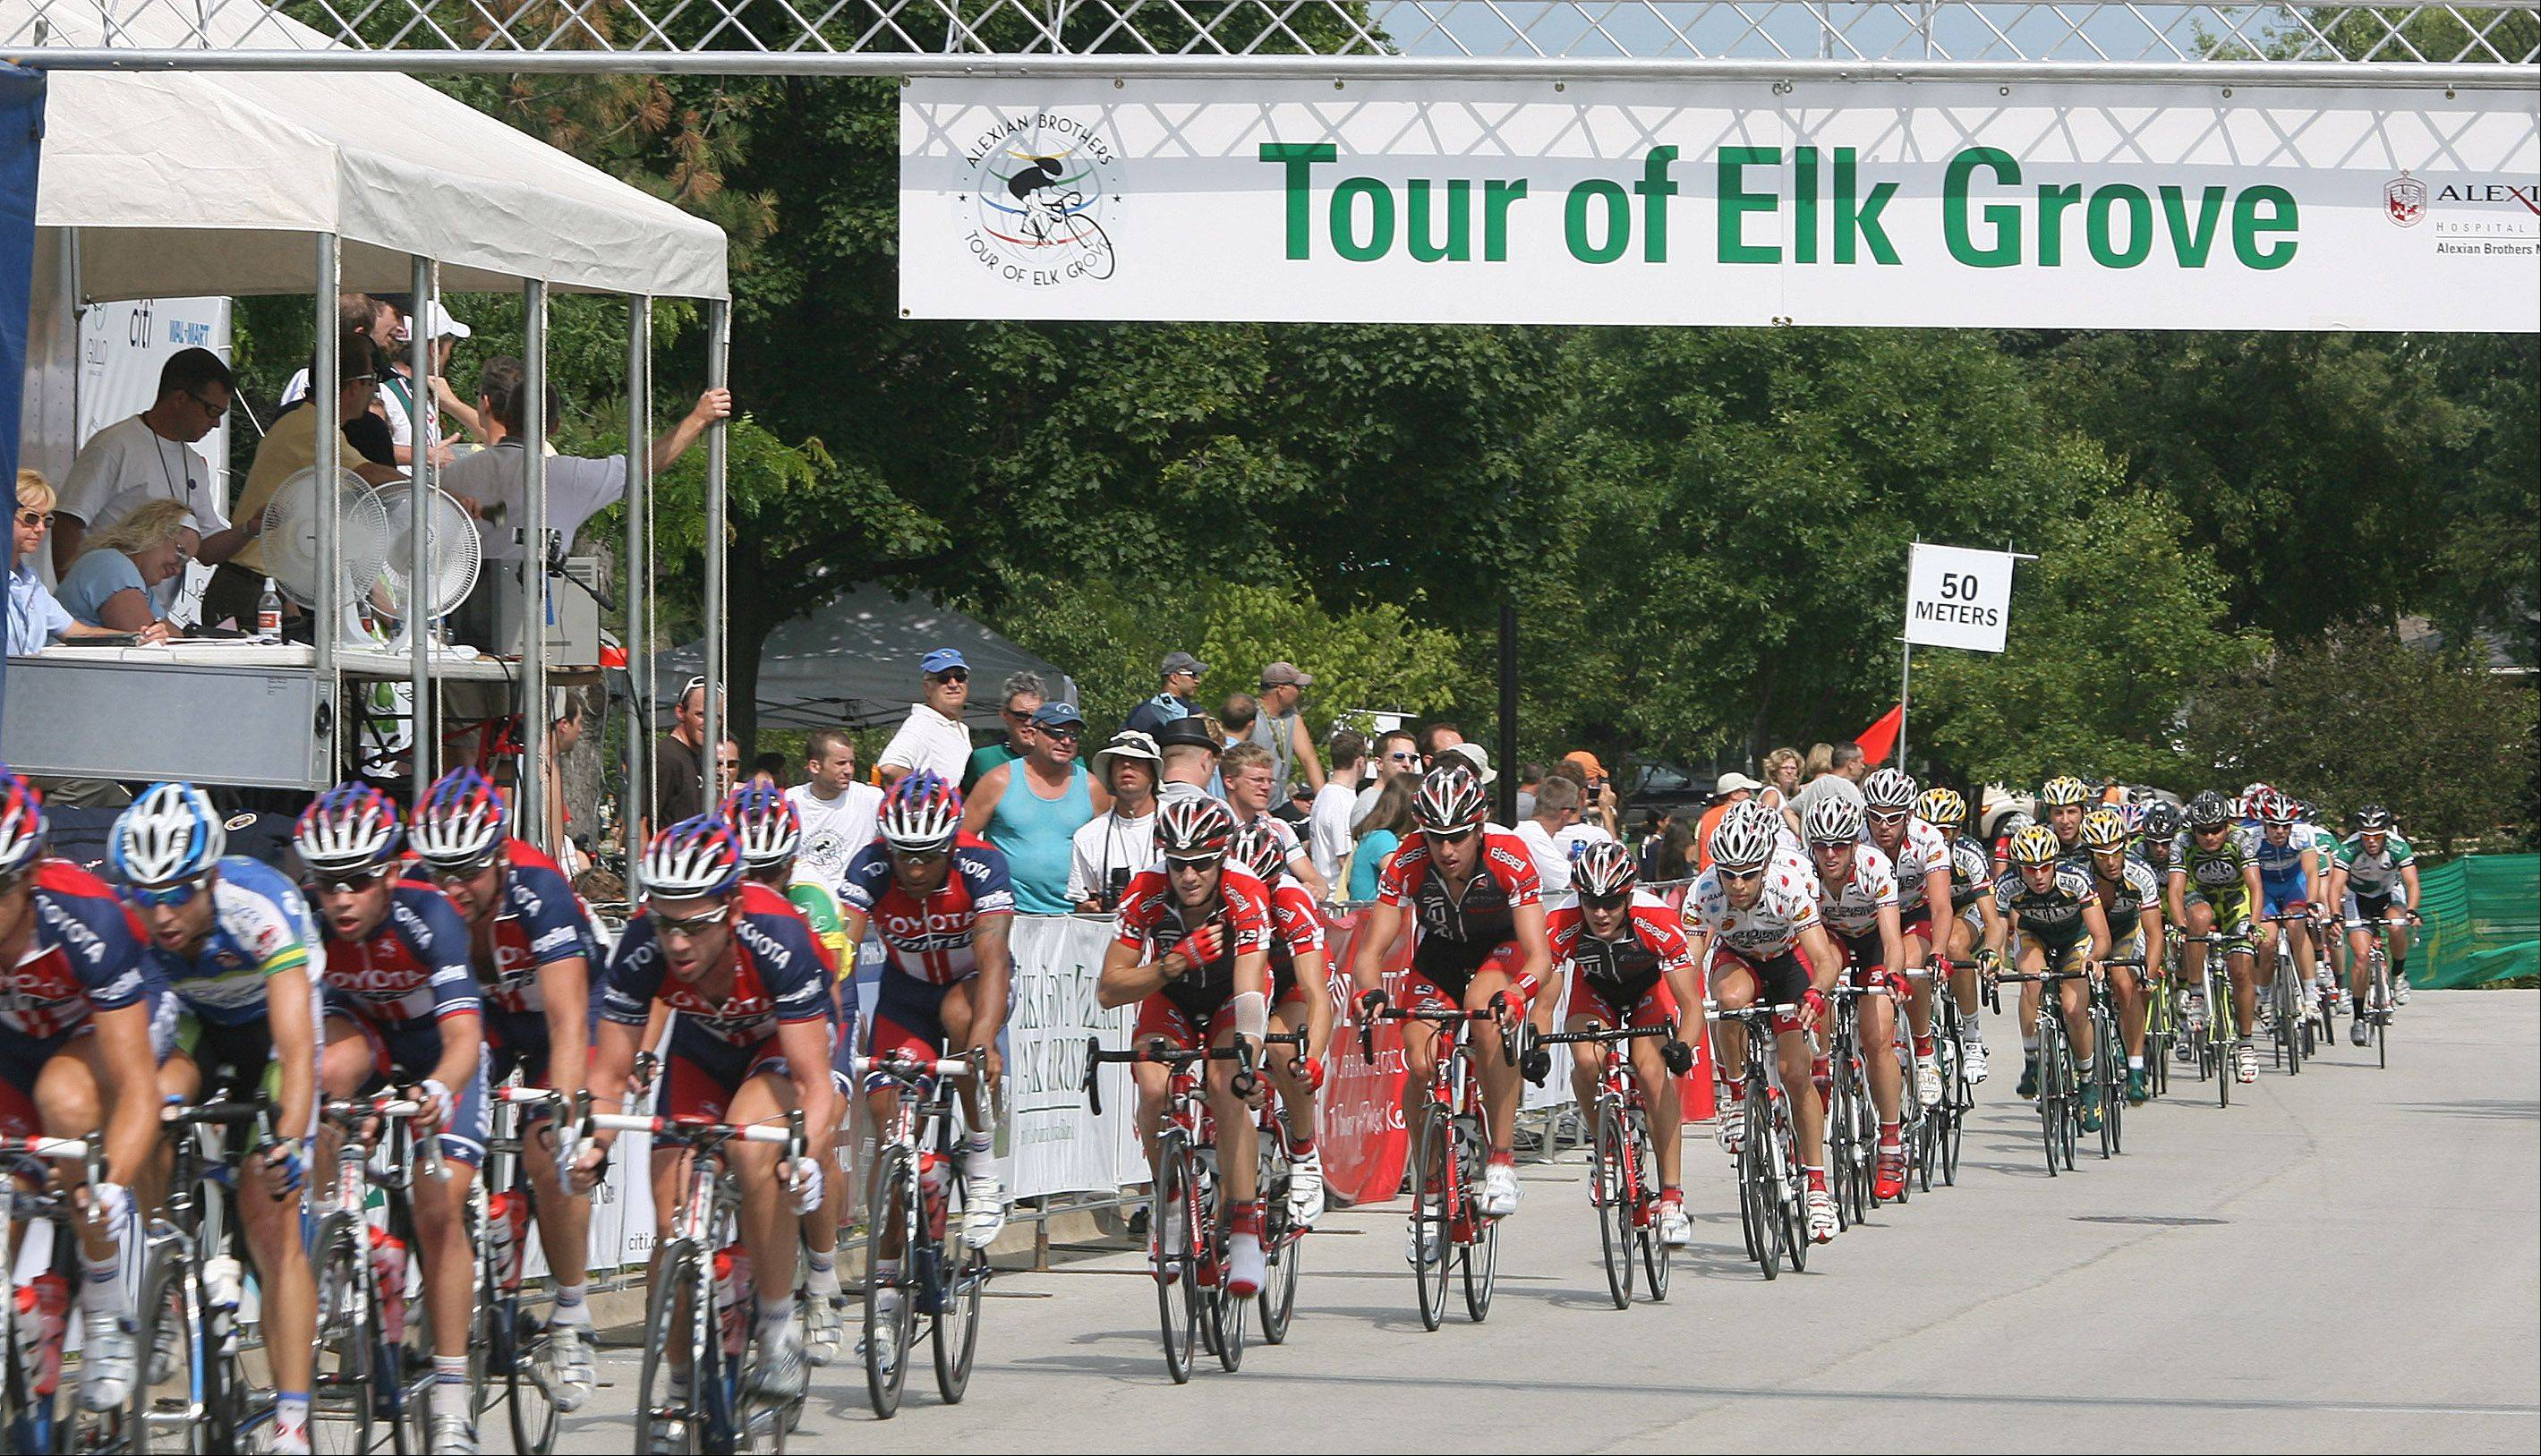 Charitable African team to compete in Tour of Elk Grove